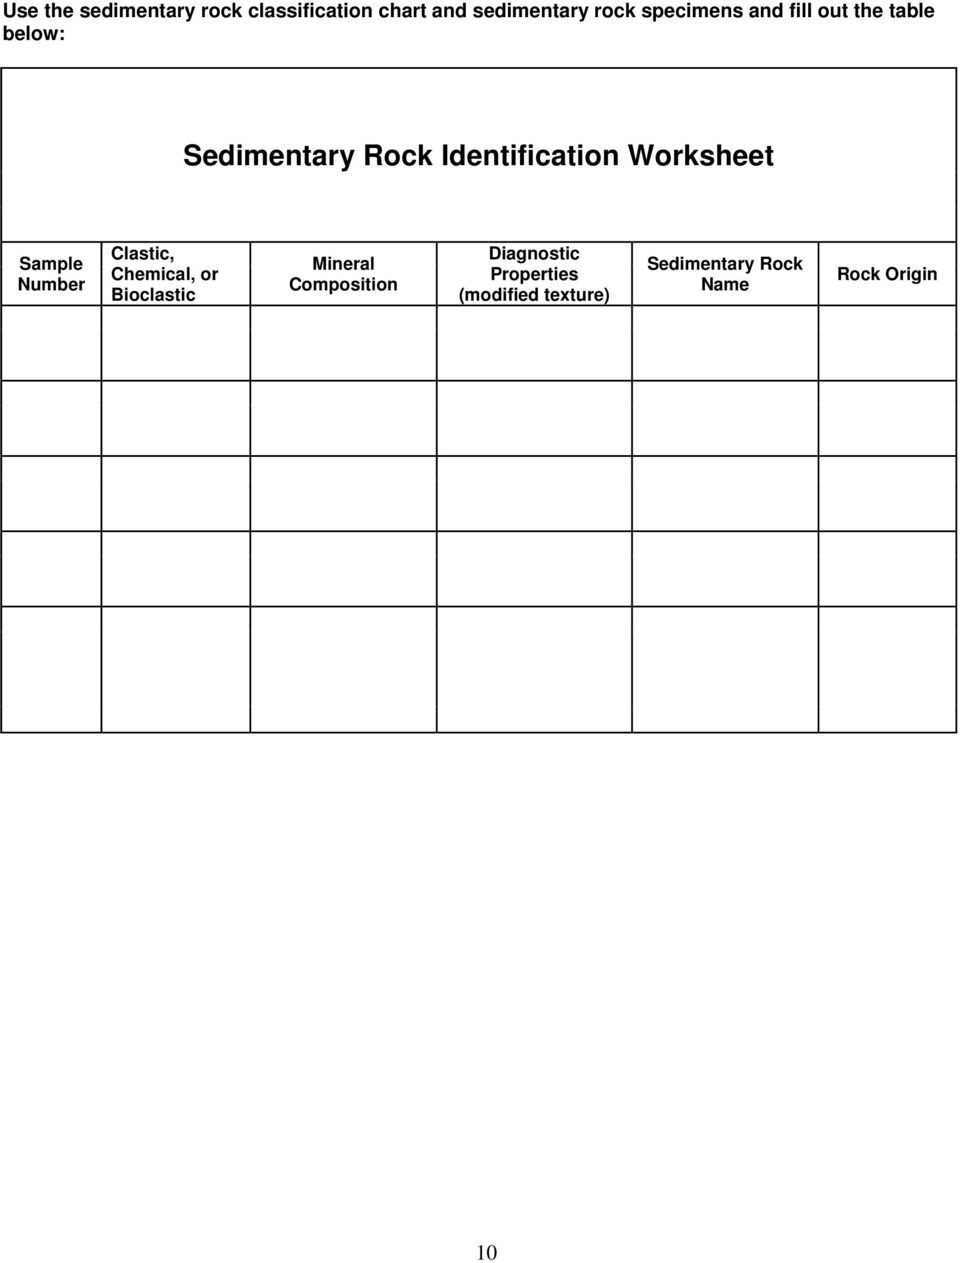 Worksheet Sample Number Clastic, Chemical, or Bioclastic Mineral